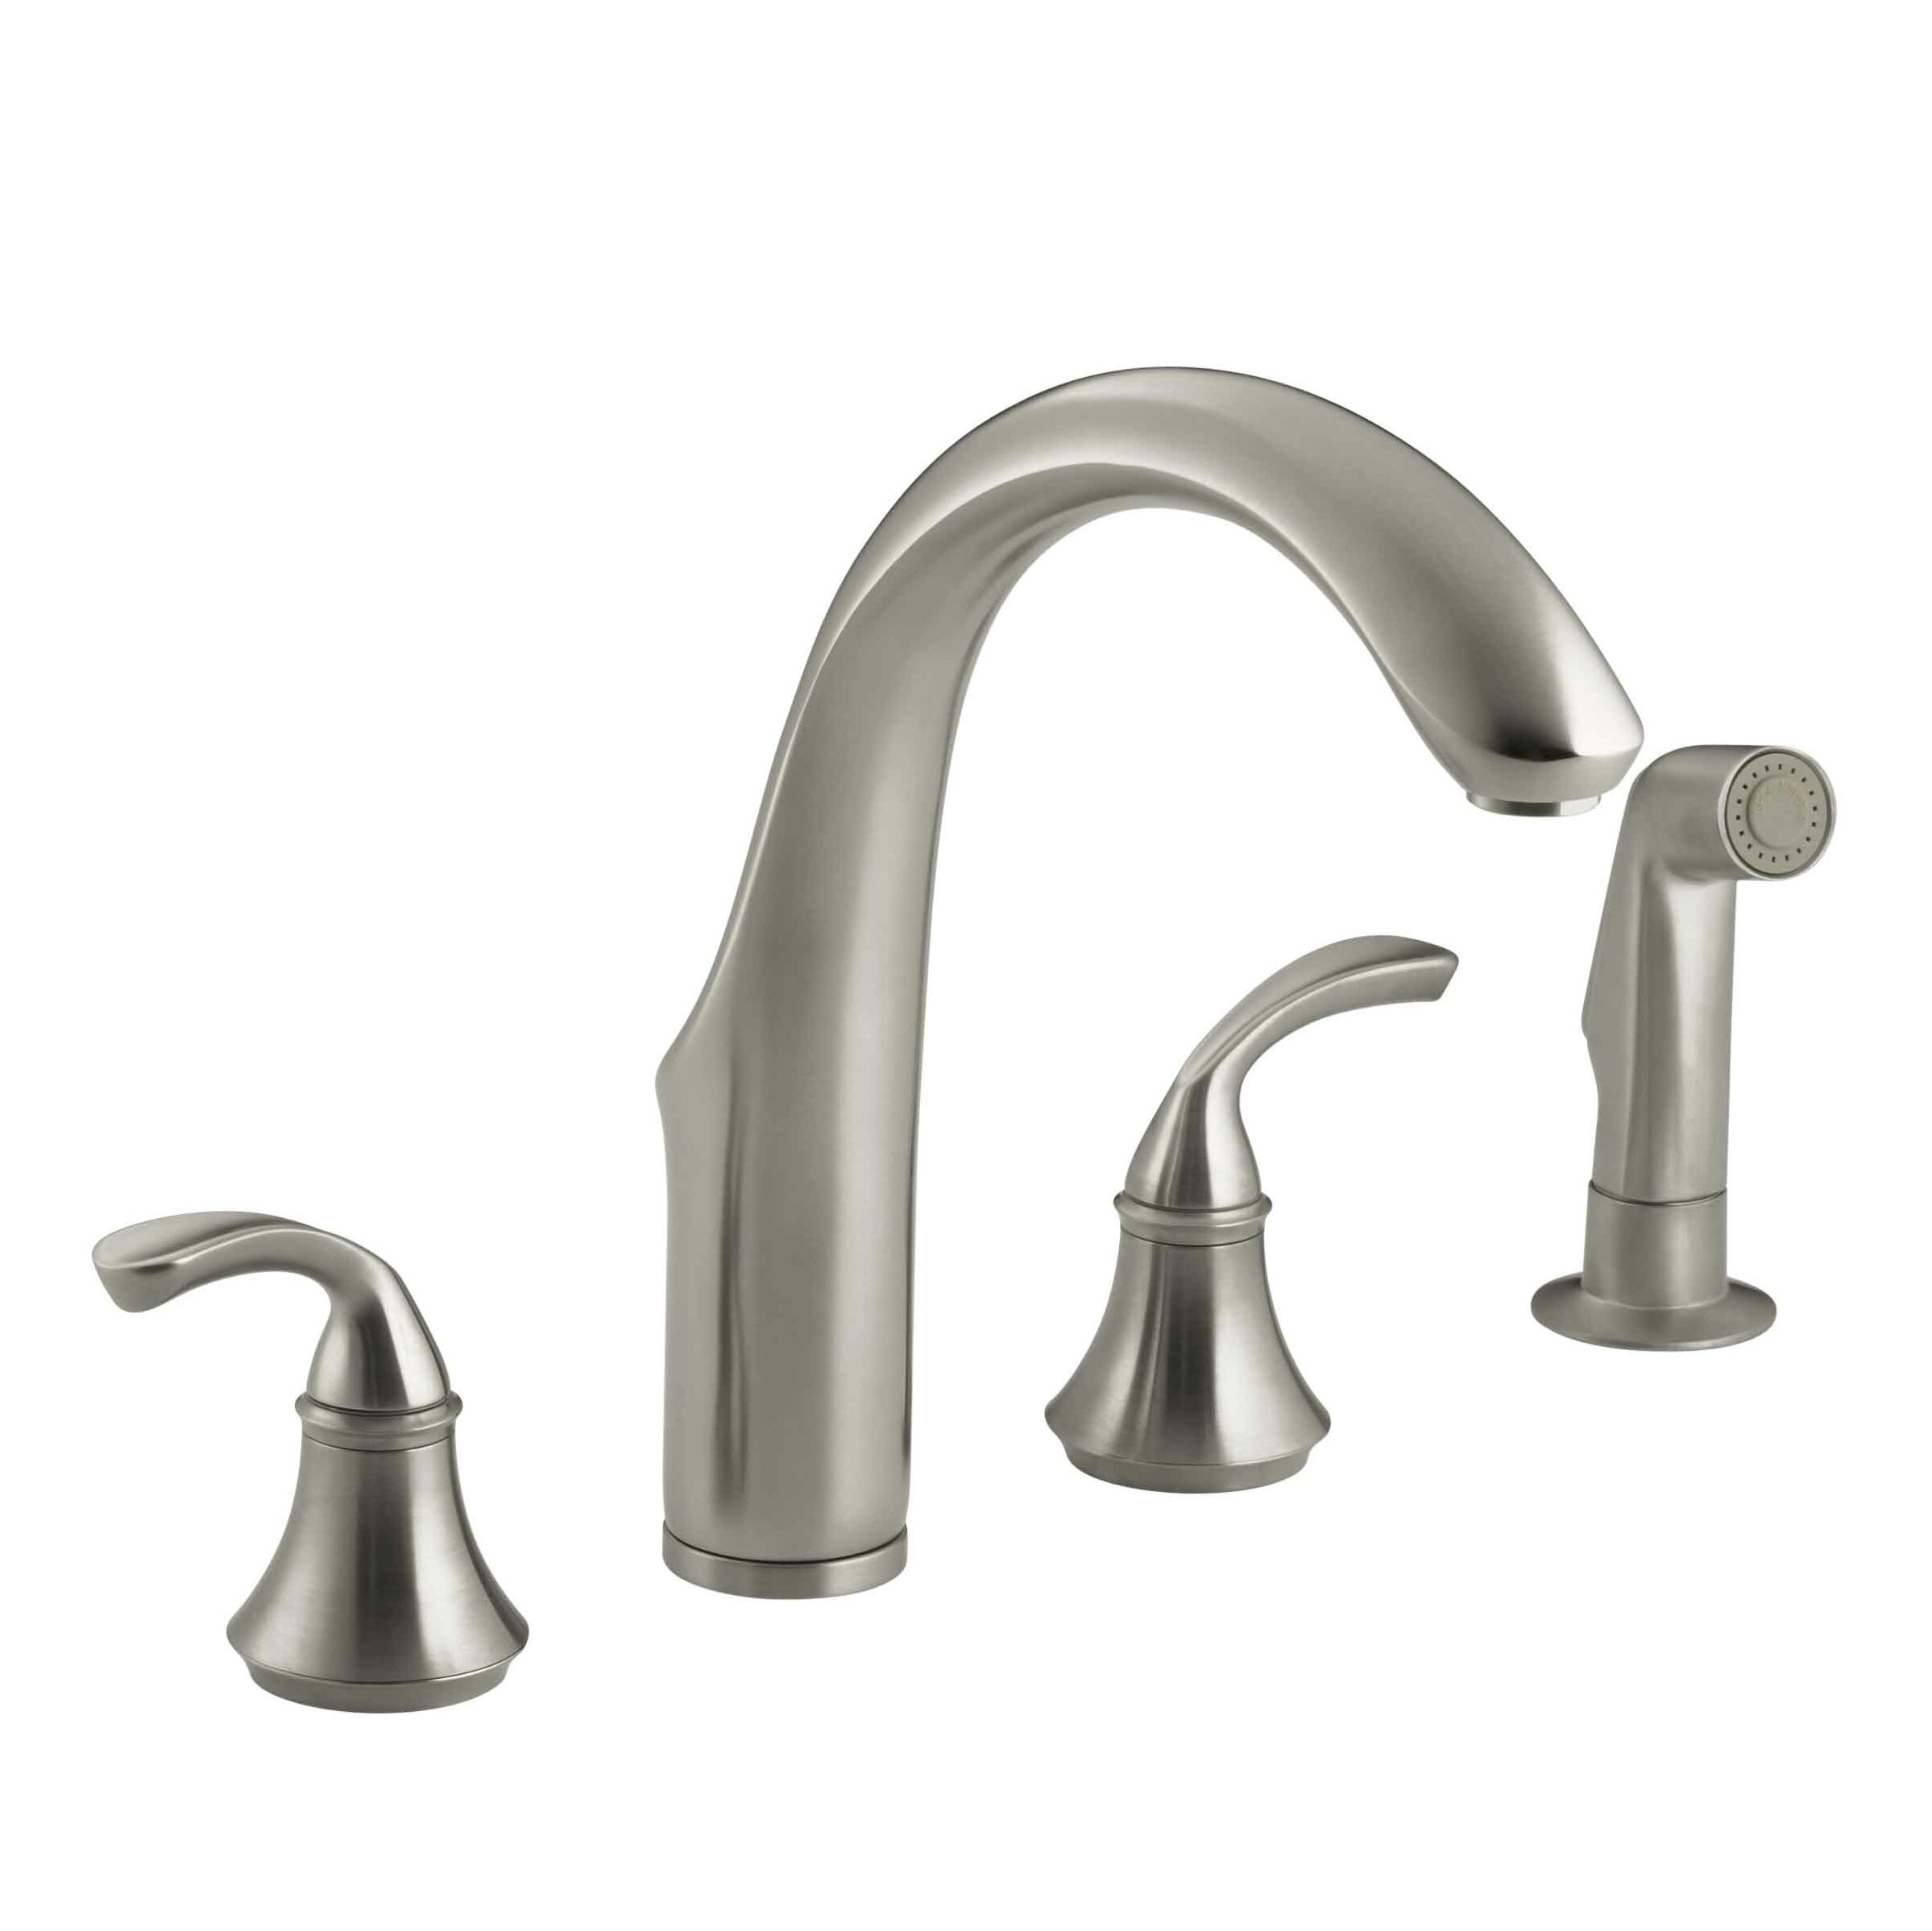 K 10445 Bn Kohler Forte 4 Hole Kitchen Sink Faucet With 7 3 4 Spout Matching Finish Sidespray Reviews Wayfair